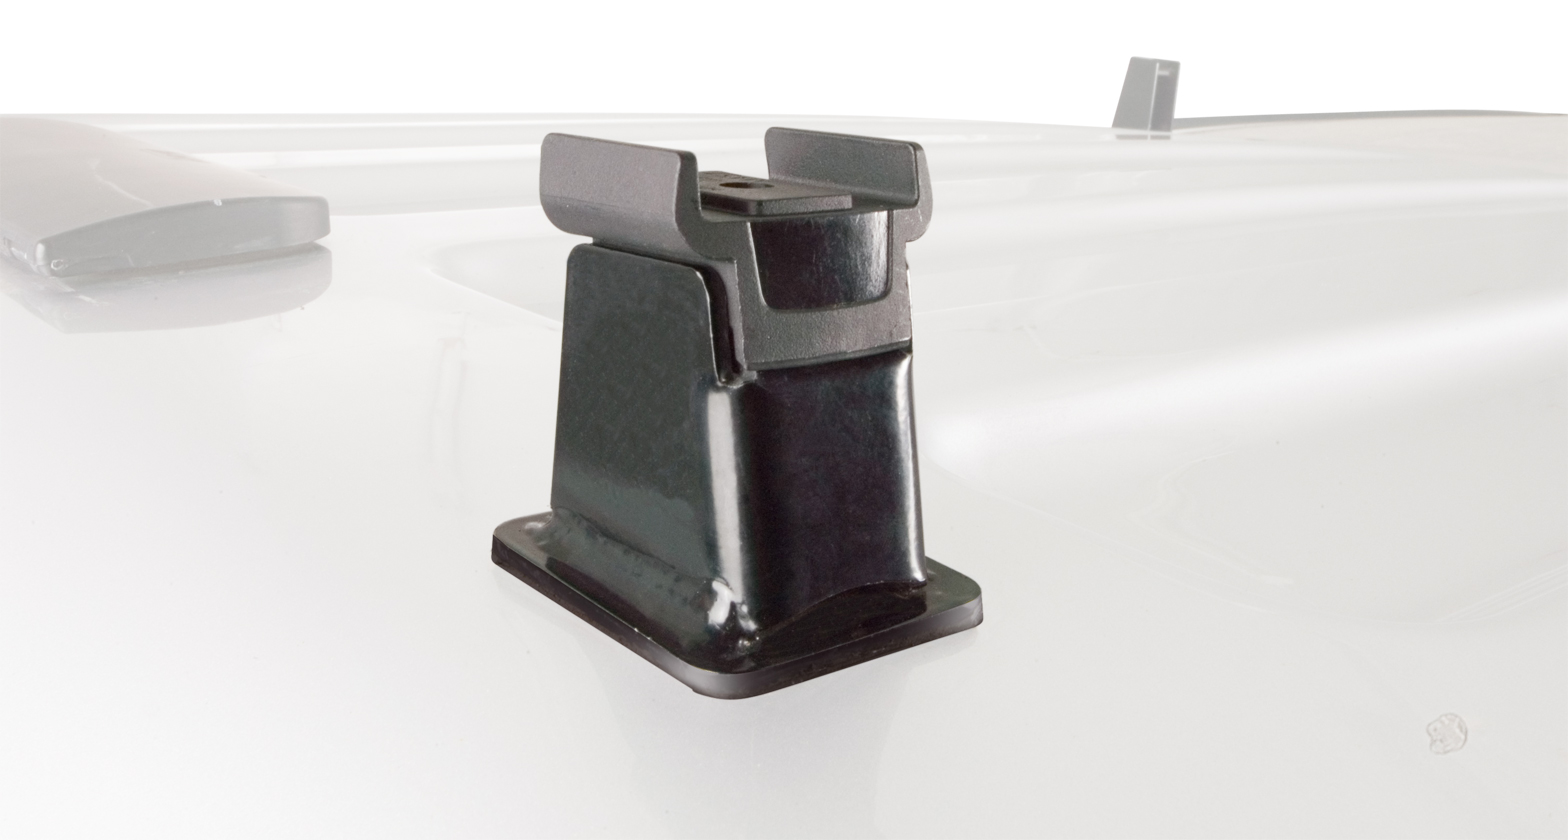 & ARB Adapter for Heavy Duty Bar - #ARB-HD | Rhino-Rack